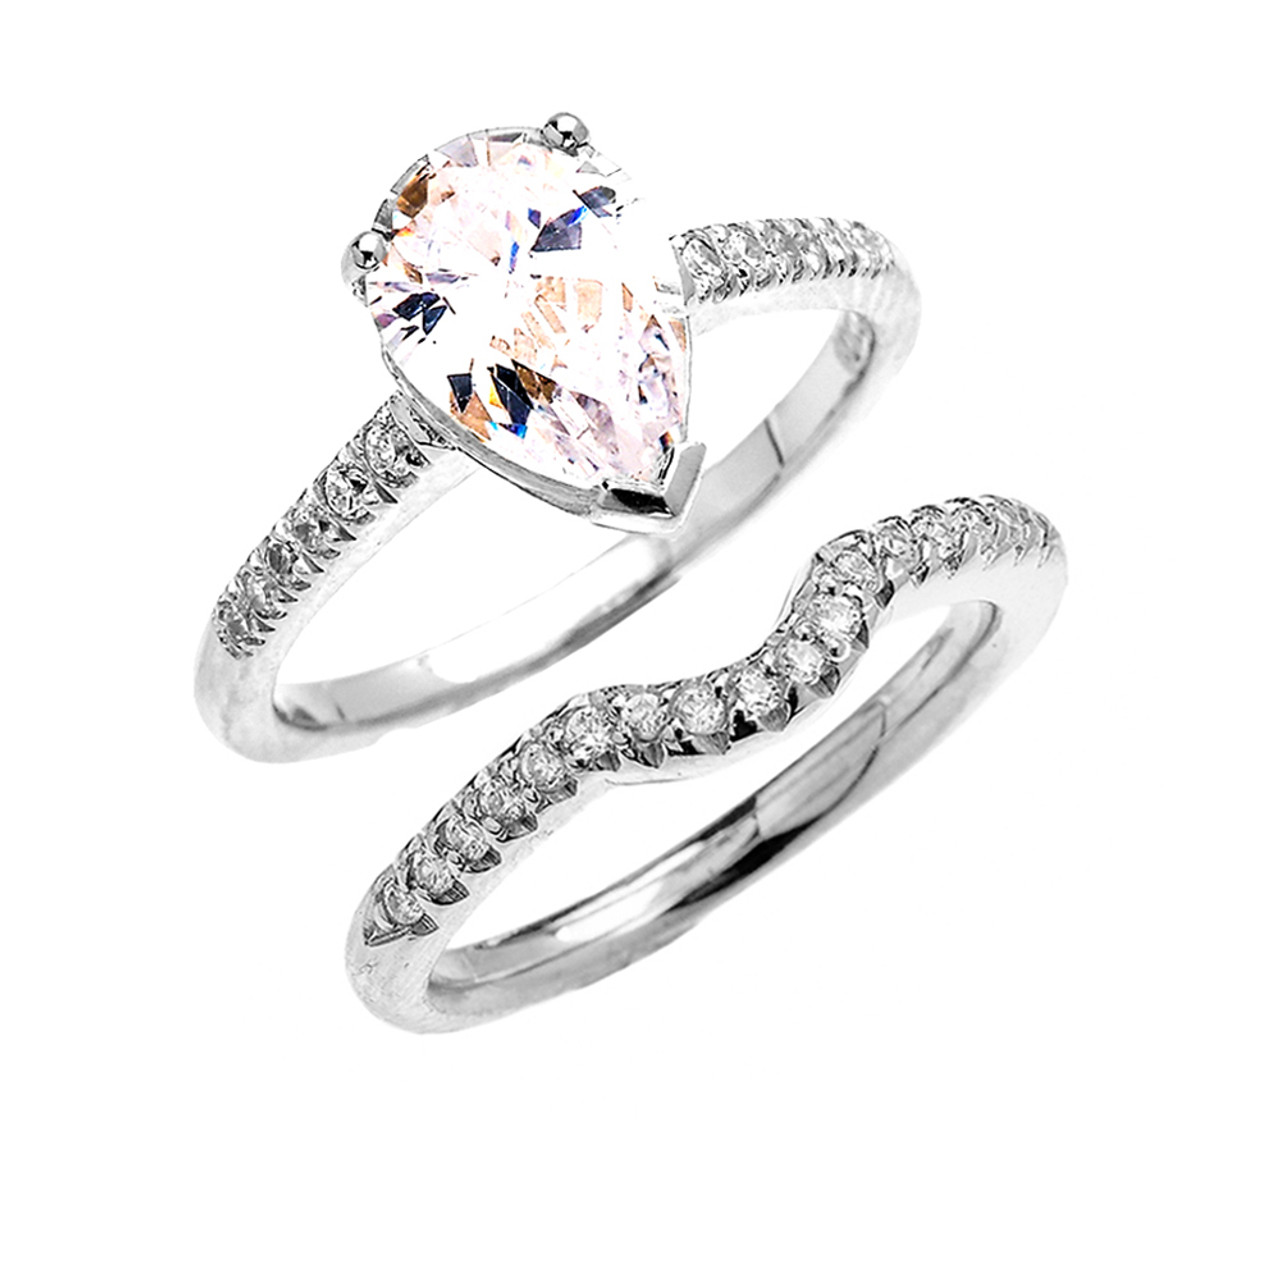 White Gold Dainty Diamond Wedding Ring Set With 3 Carat Pear Shape Cubic  Zirconia Center Stone